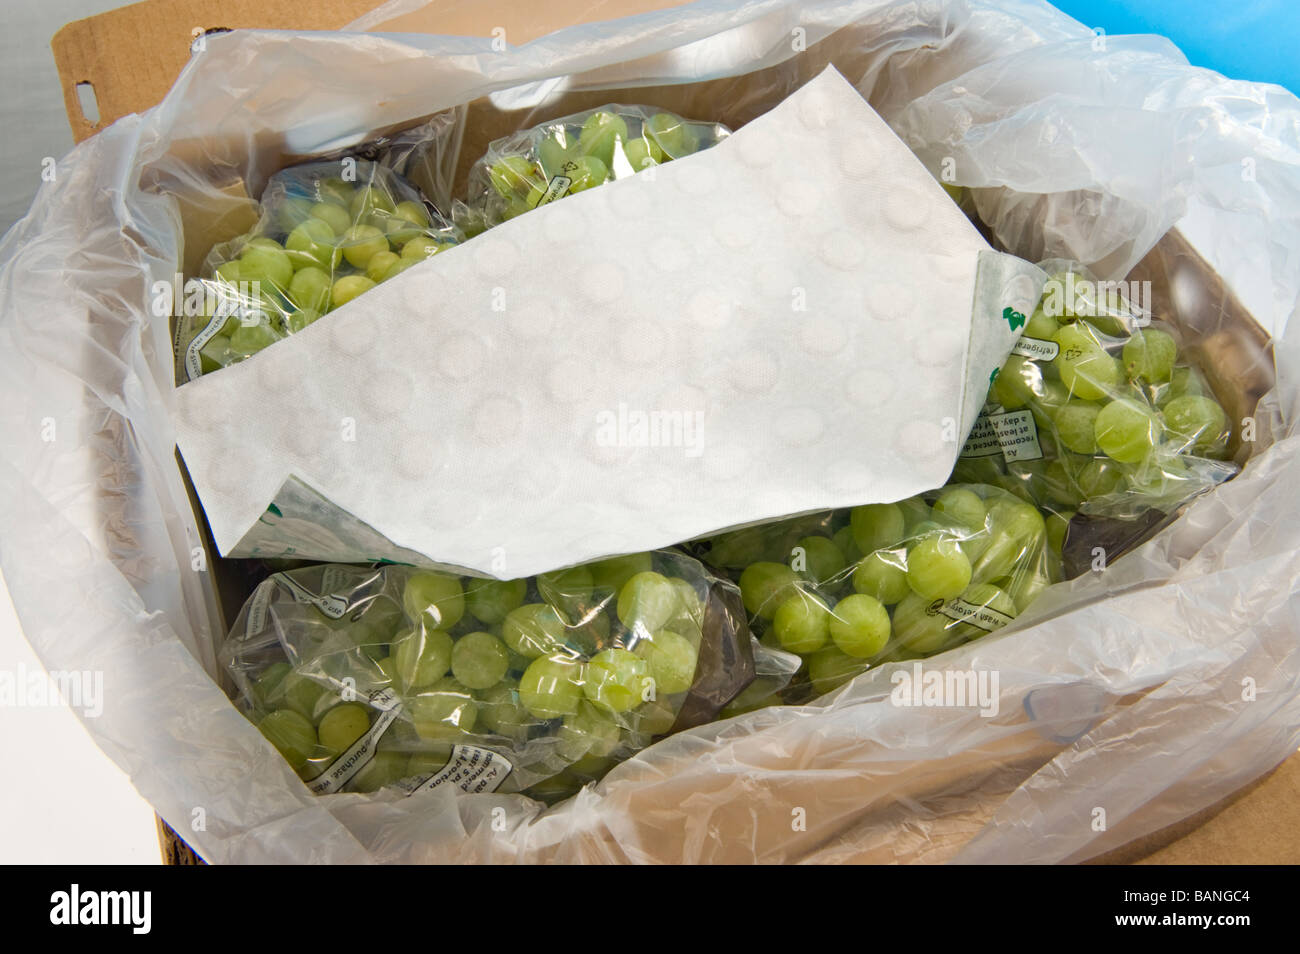 quality seedless table grape packed pack guard paper sheet active ingredient sodium meta bisulfite against funghi - Stock Image